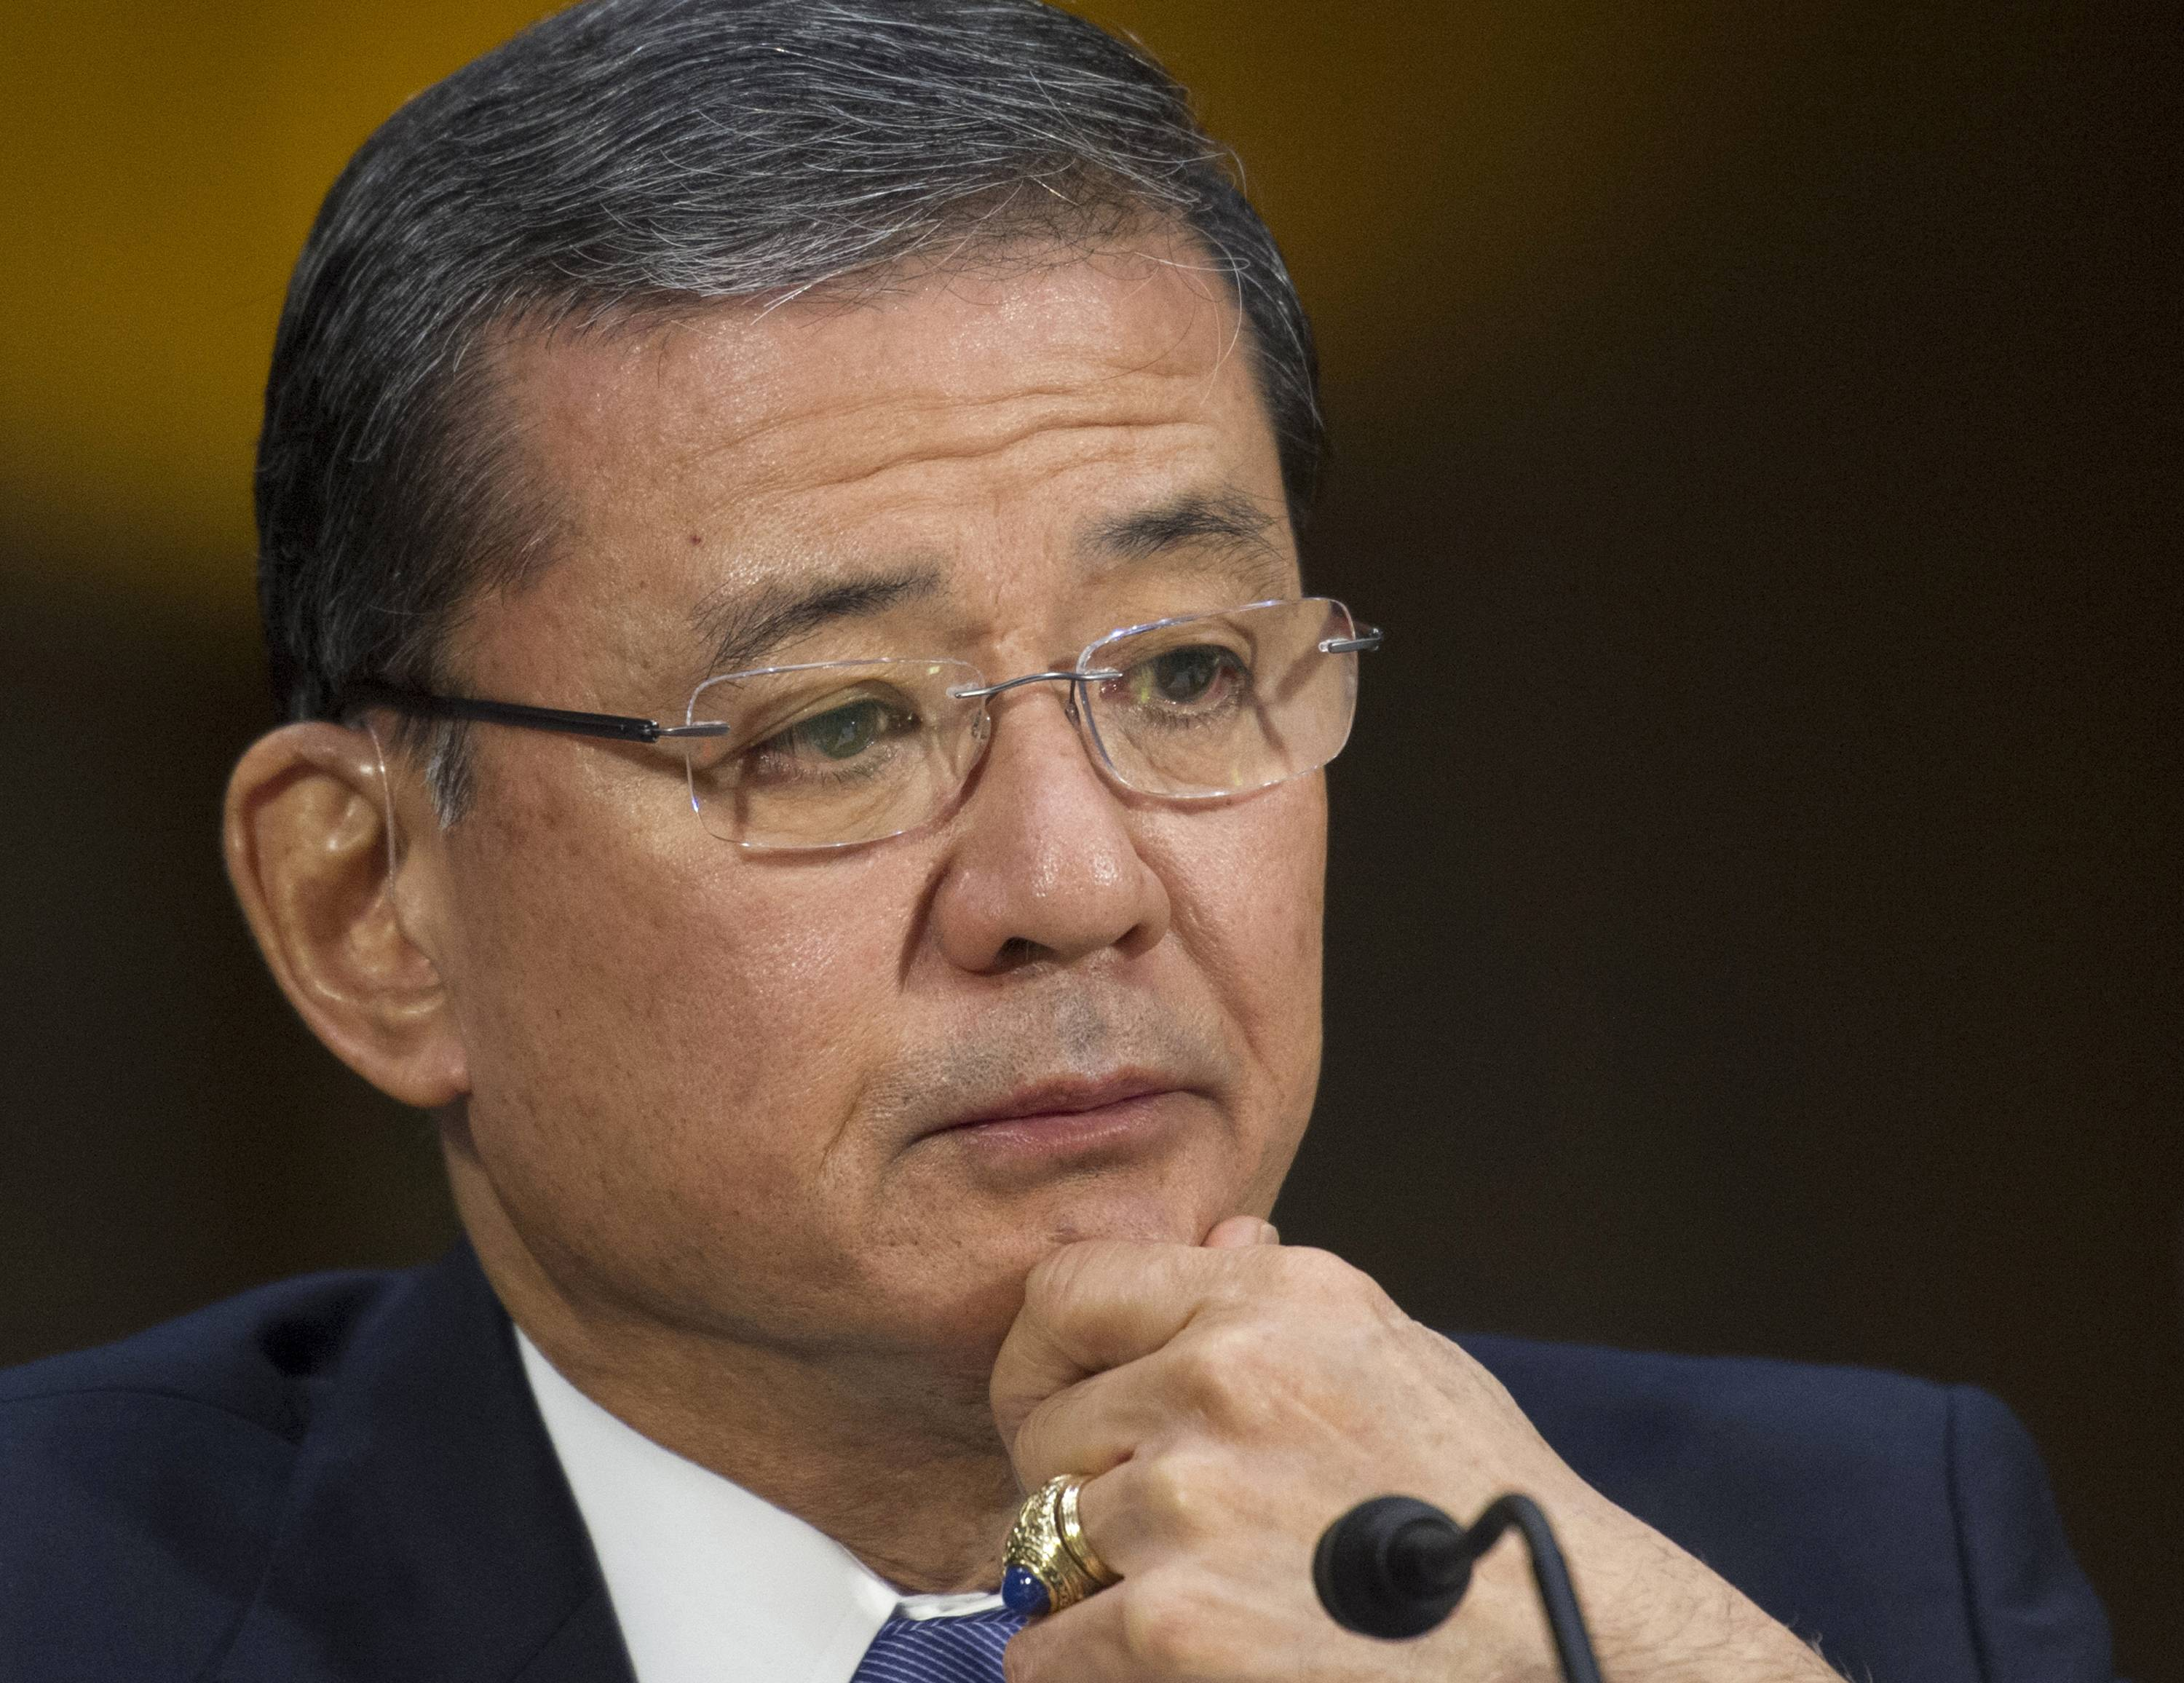 Problems within the Veterans Administration are causing a growing number of members of Congress to call for the resignation of VA Secretary Eric Shinseki.